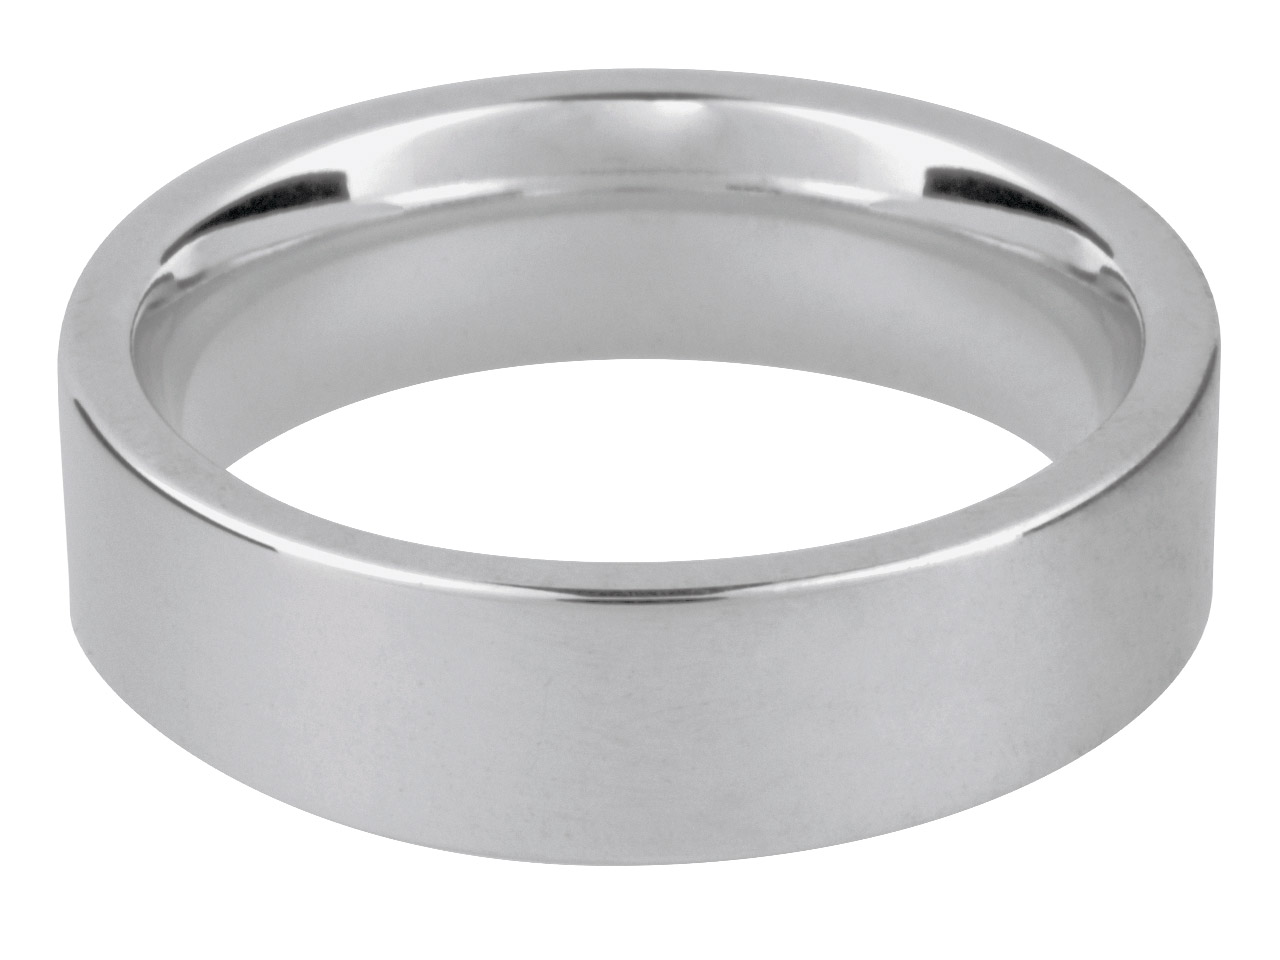 Silver Easy Fit Wedding Ring 6.0mm U 8.6gms Heavy Weight Hallmarked   Wall Thickness 2.17mm